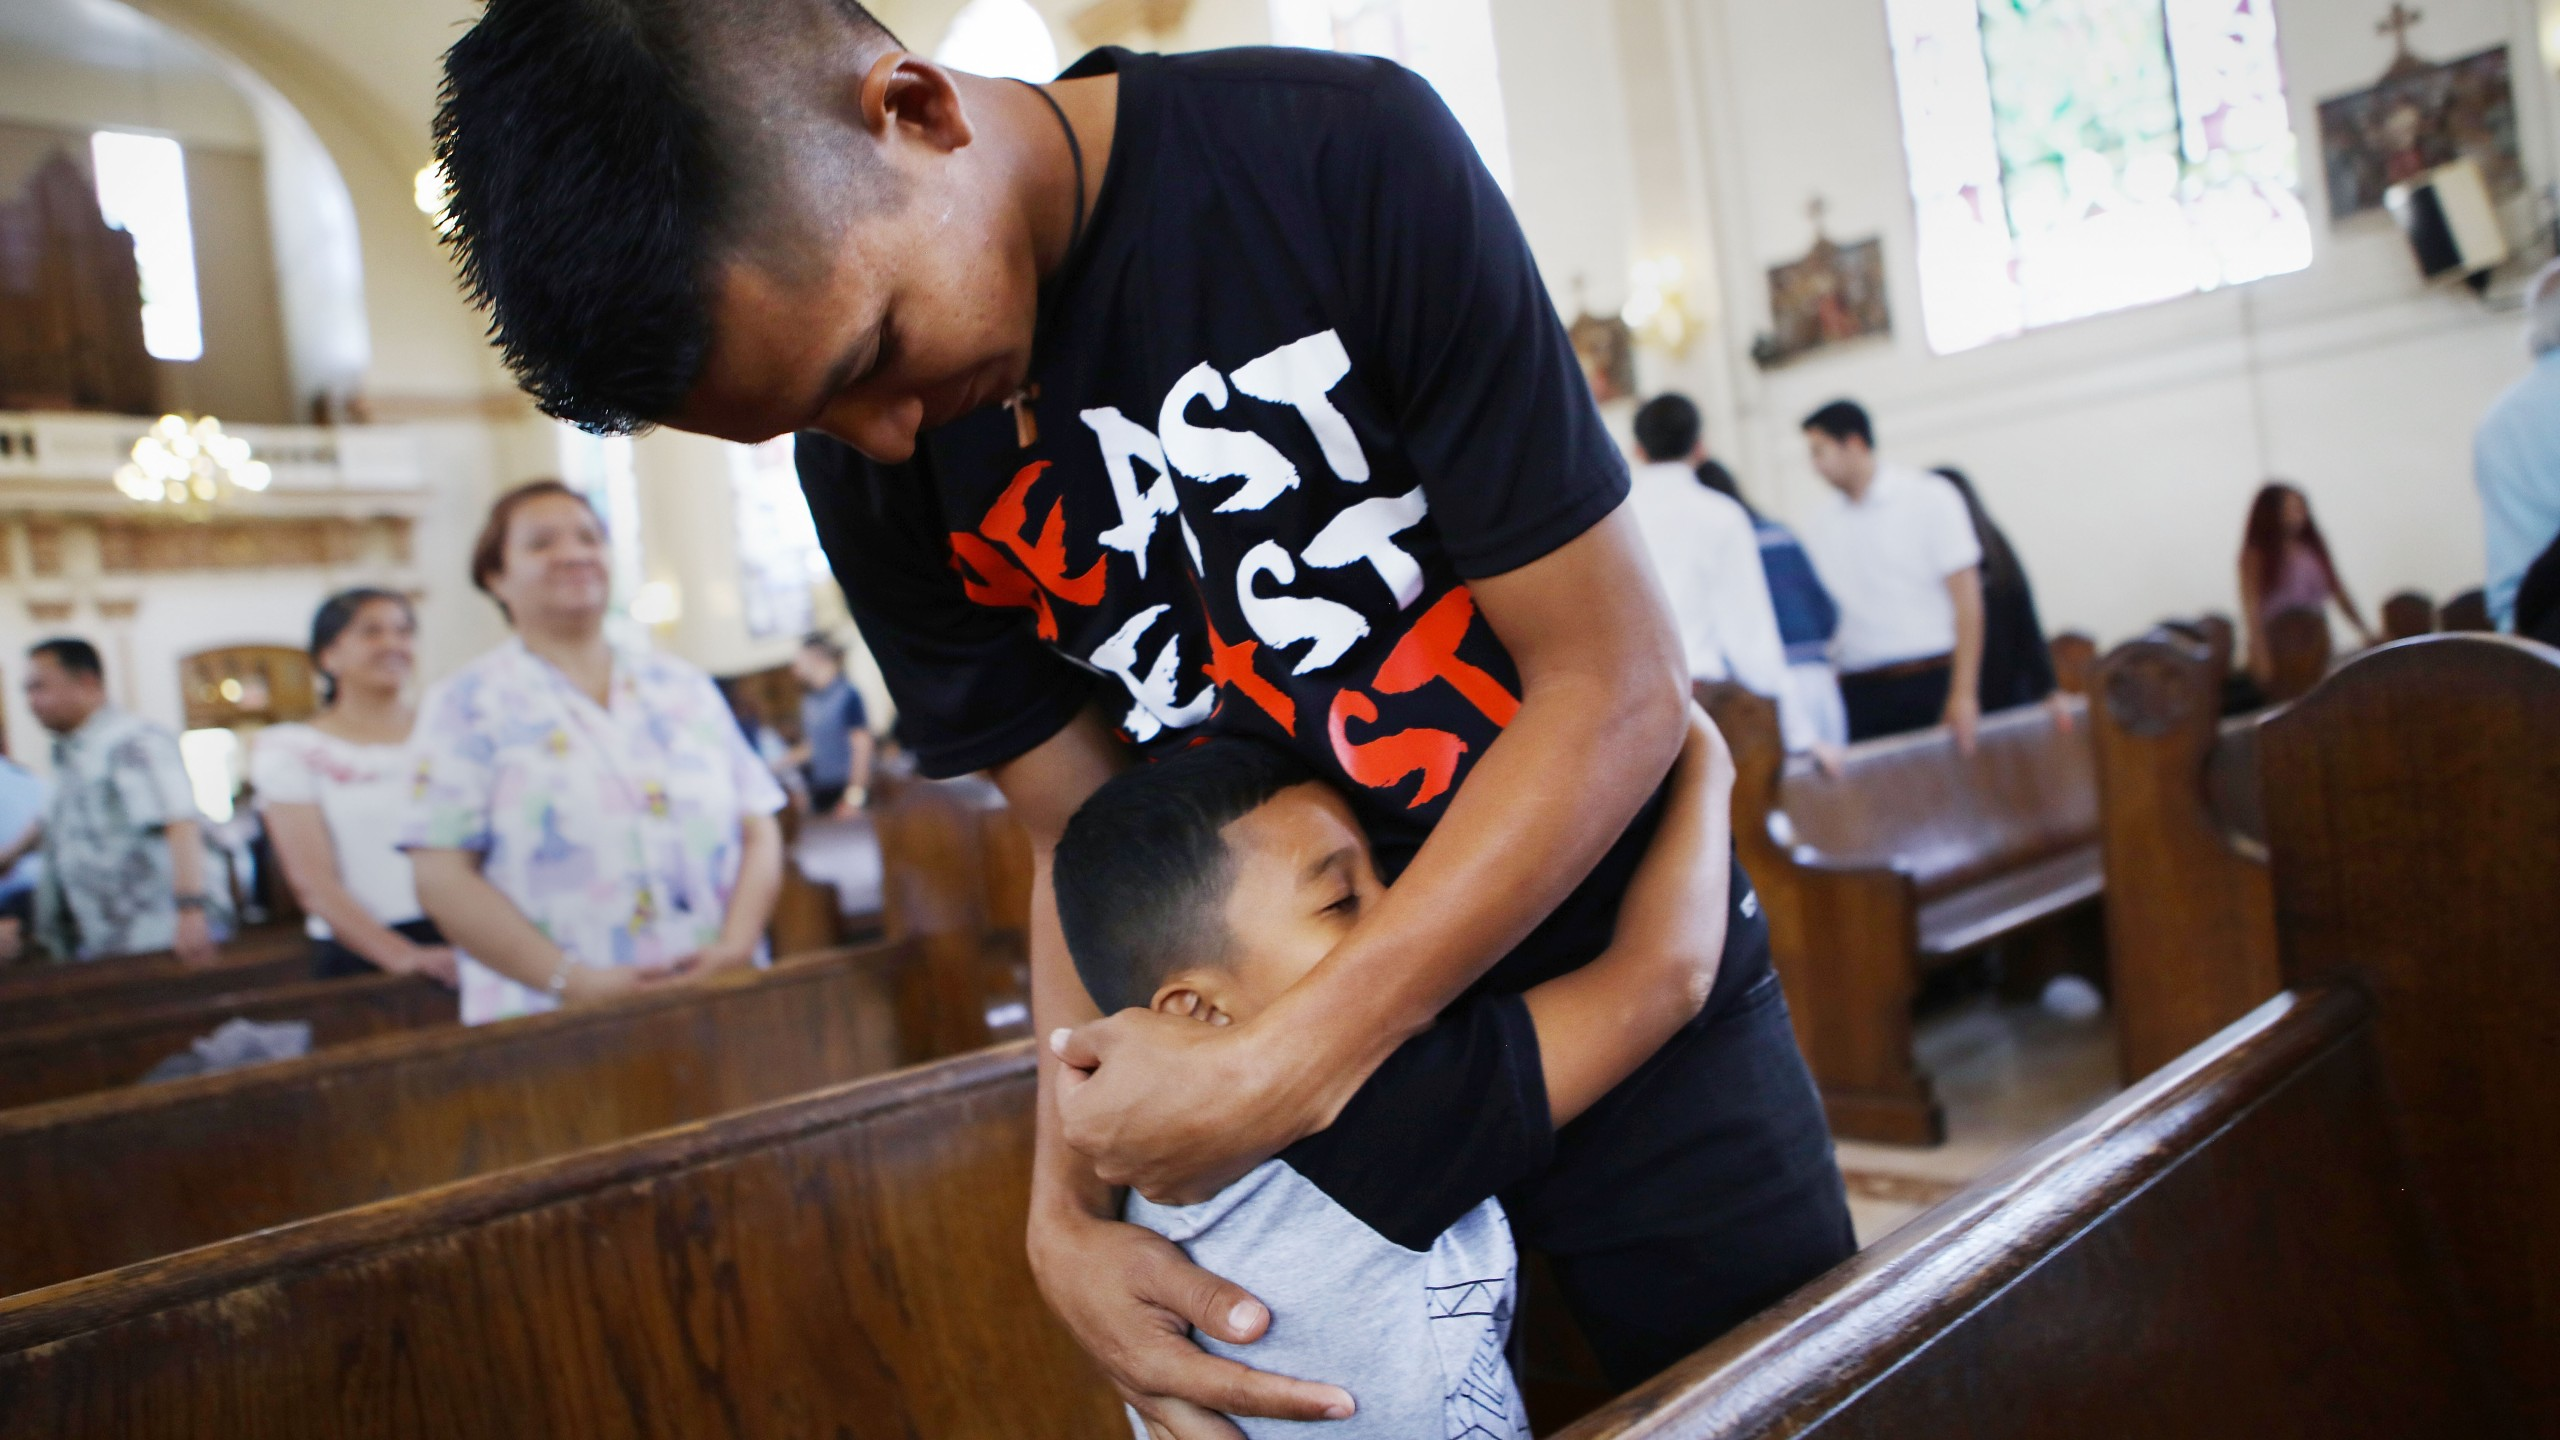 Honduran father Juan and his 6-year-old son, Anthony, asylum seekers who were separated for 85 days after crossing into the U.S. at a lawful port of entry in Texas, embrace while attending Sunday mass in Oakland on Sept. 9, 2018. (Credit: Mario Tama / Getty Images)